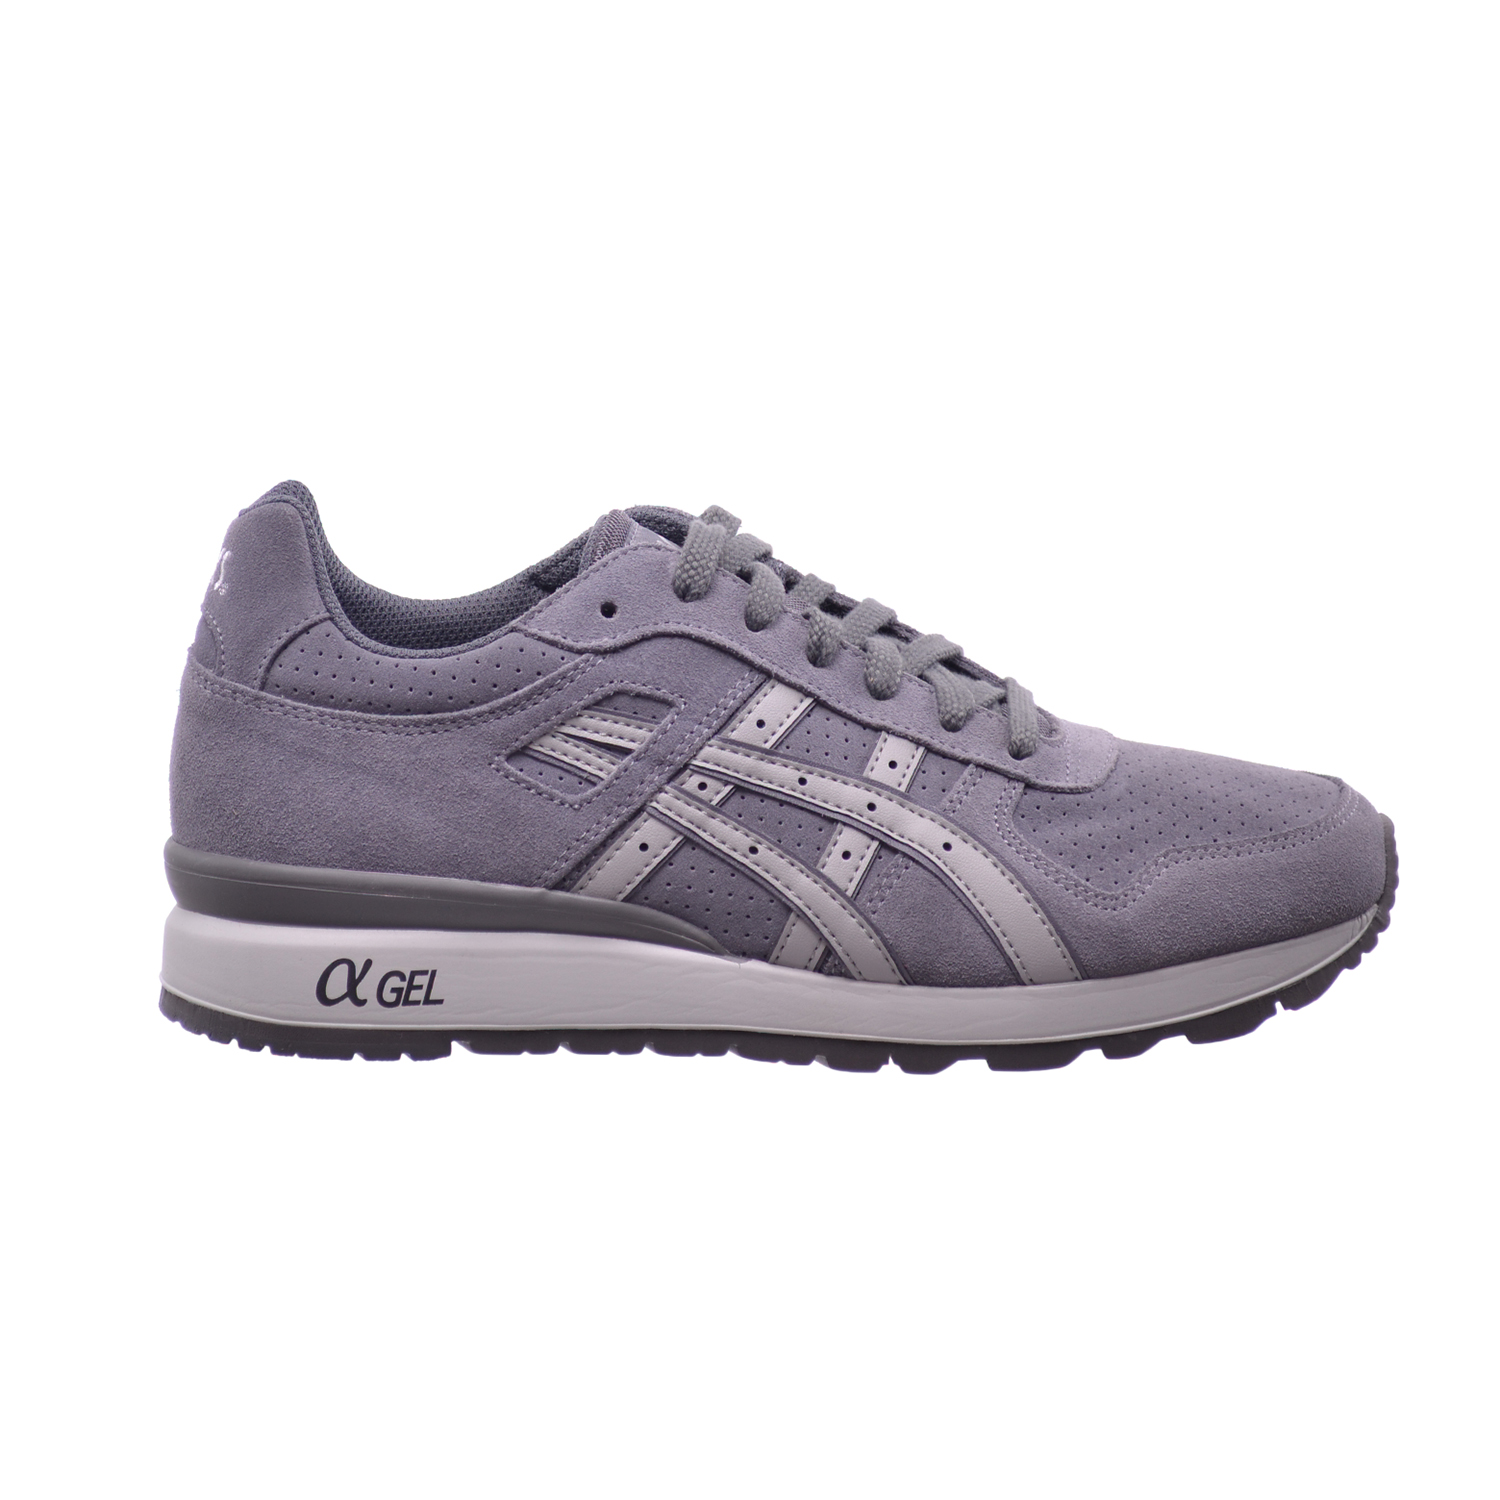 promo code 81640 7948d Details about Asics GT-II Unisex Running Shoes Grey/Light Grey h5s3l-1113